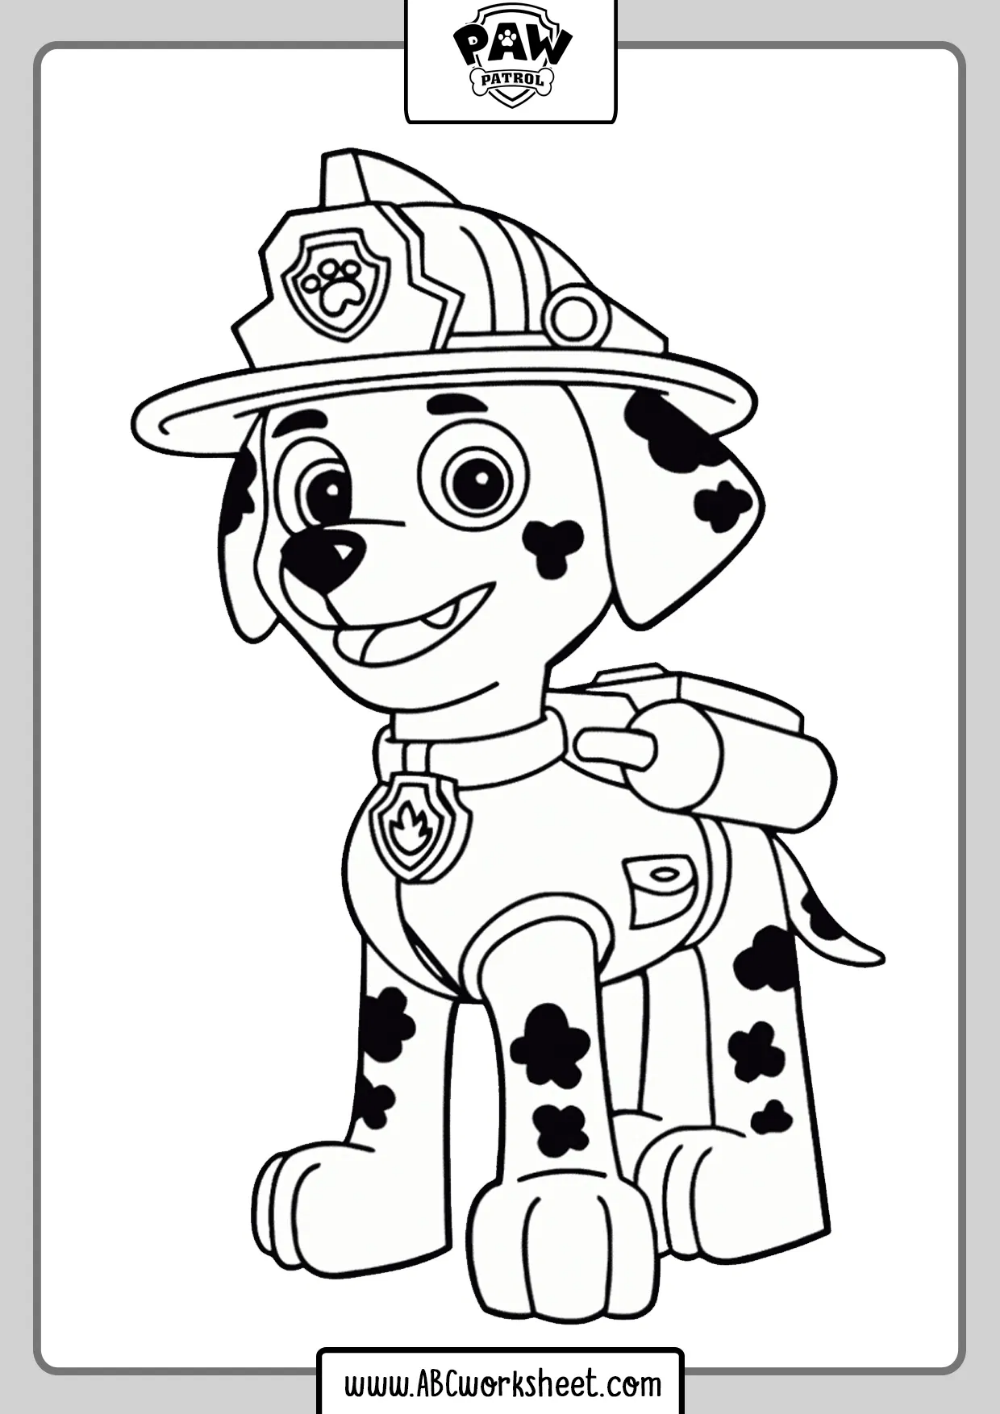 paw patrol characters paw patrol characters coloring pages at getdrawings free patrol characters paw